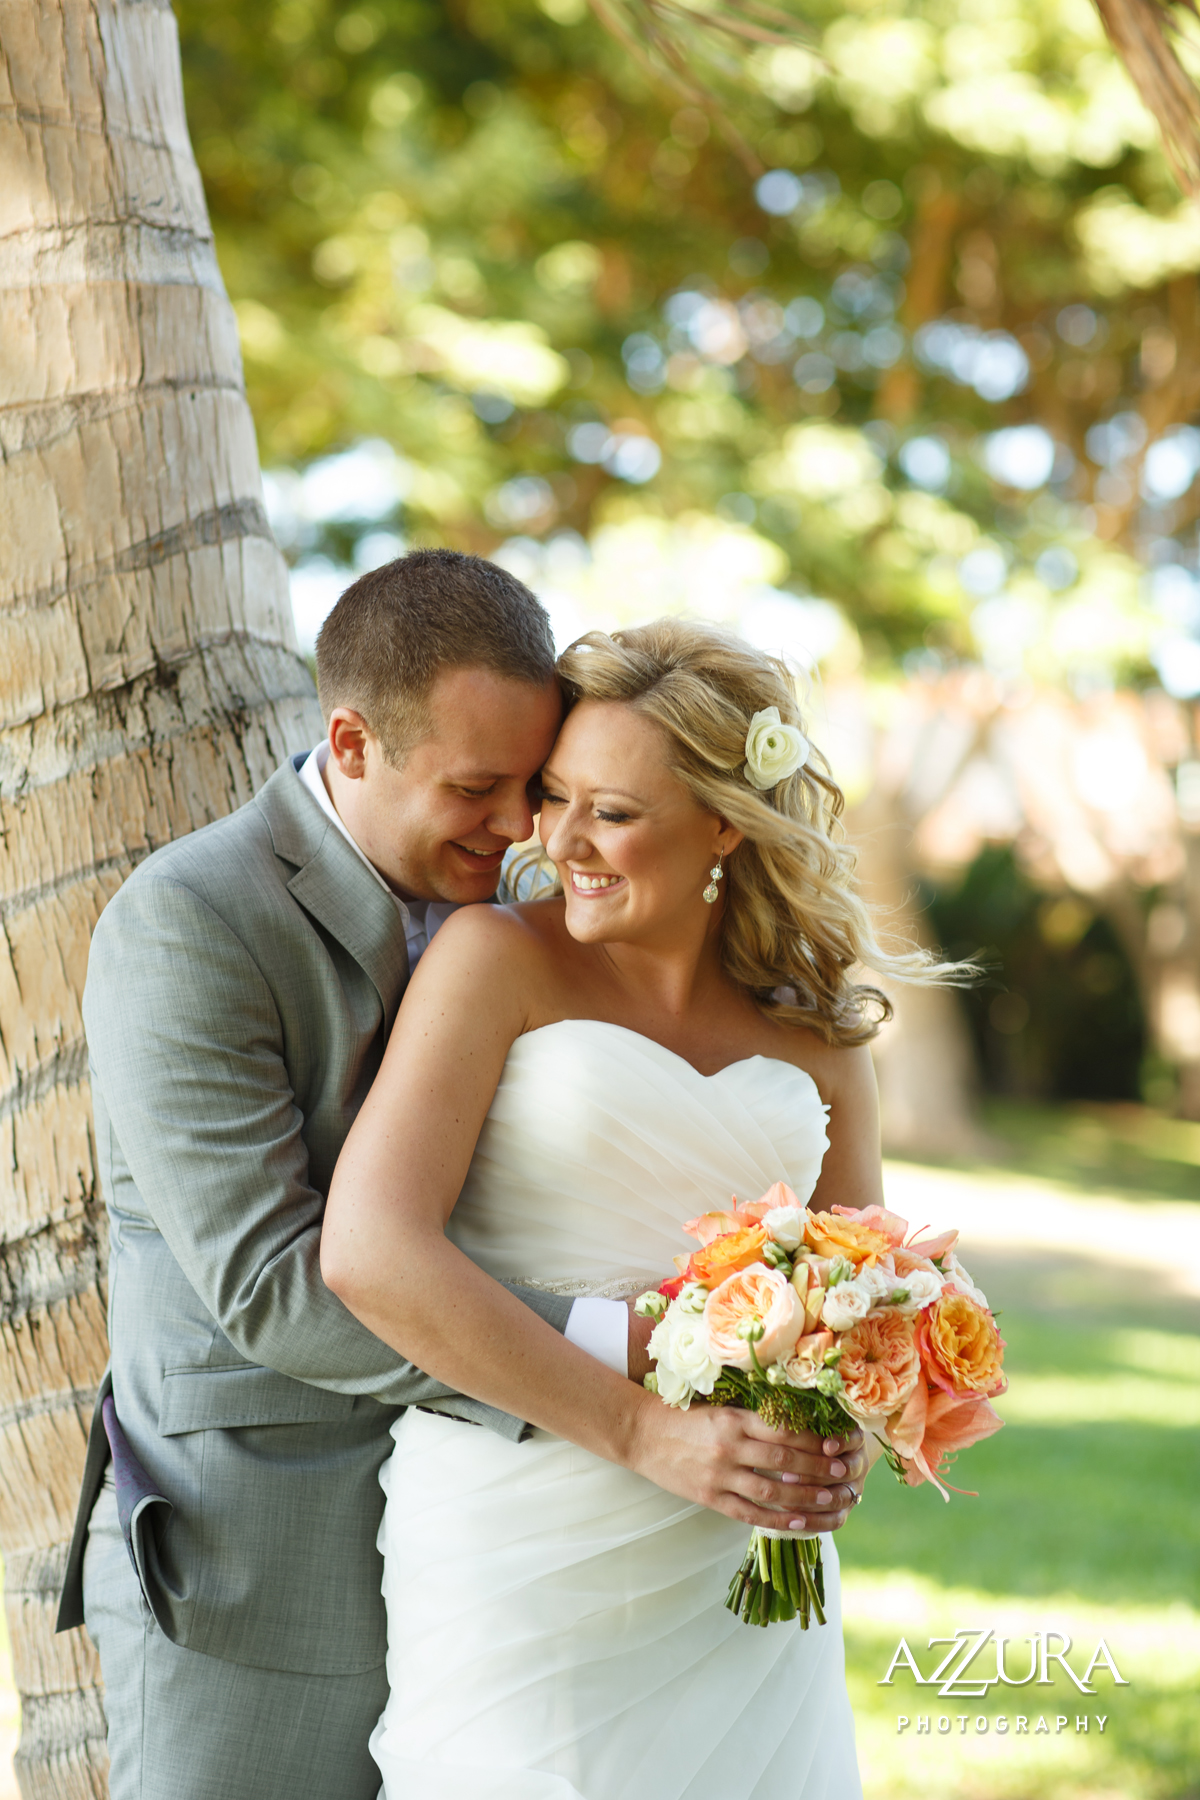 Olowalu Plantation House Wedding in Maui by Azzura Photography